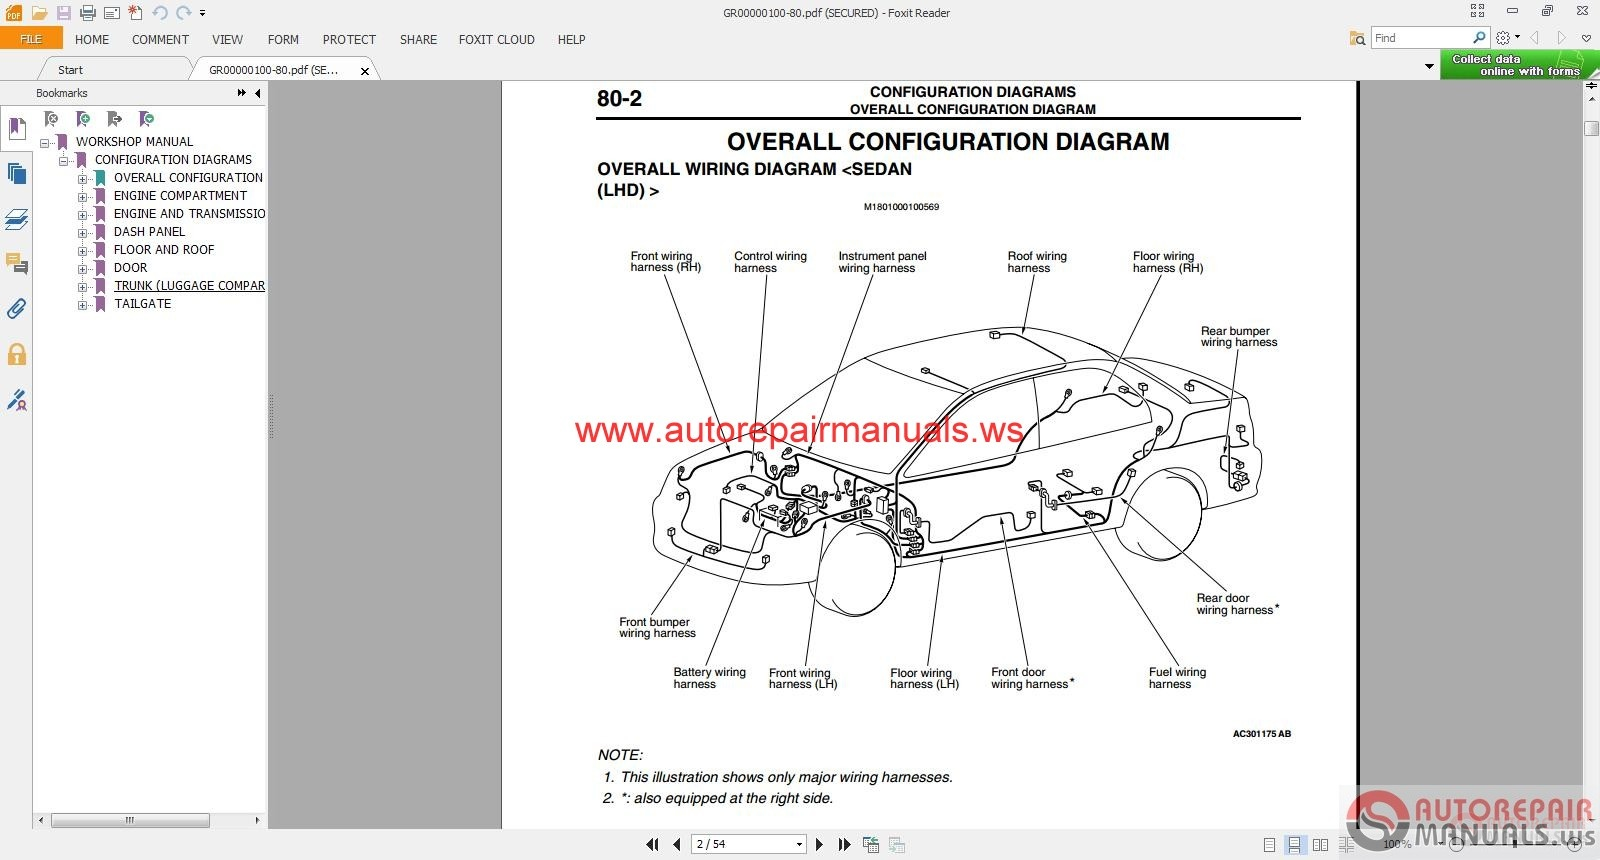 Mitsubishi Lancer Wiring Harness Diagram Will Be A 2004 Galant Radio Get Free 2003 Eclipse